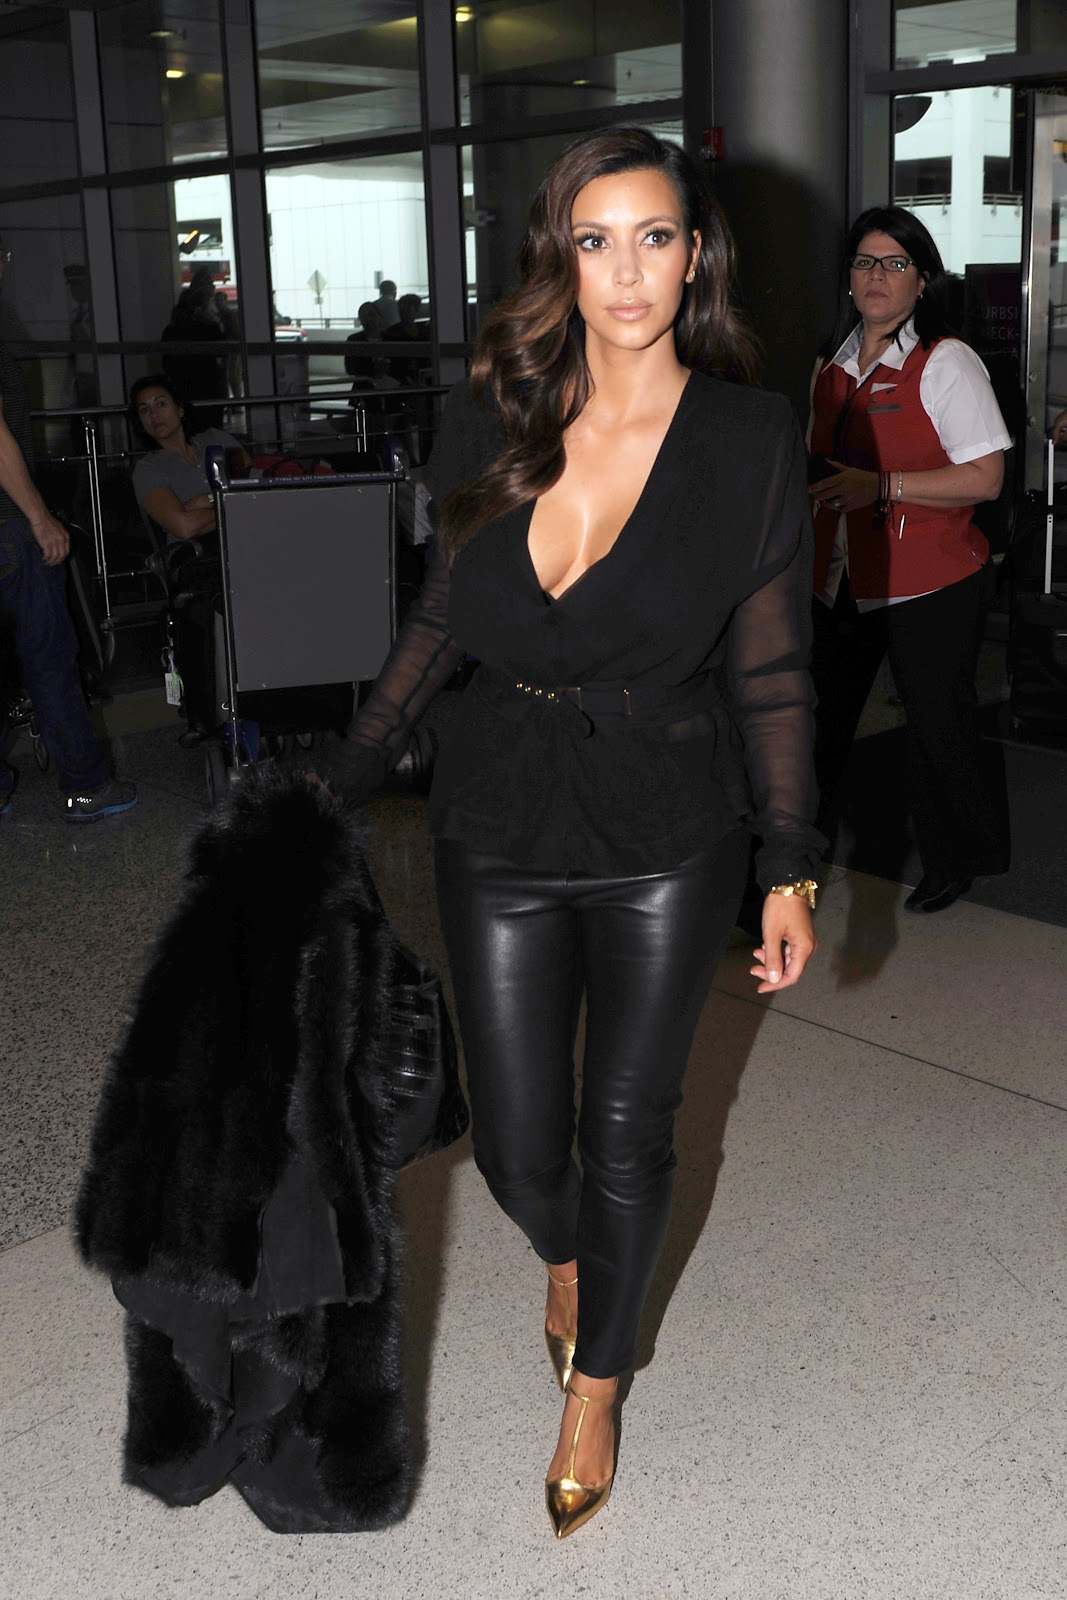 http://2.bp.blogspot.com/-cEGfAGehv5k/UIB4VqrAv7I/AAAAAAAAUNE/OiwyXRA3ucc/s1600/Kim+Kardashian+arriving+at+Miami+Airport+October+17th+2012+-05.jpg